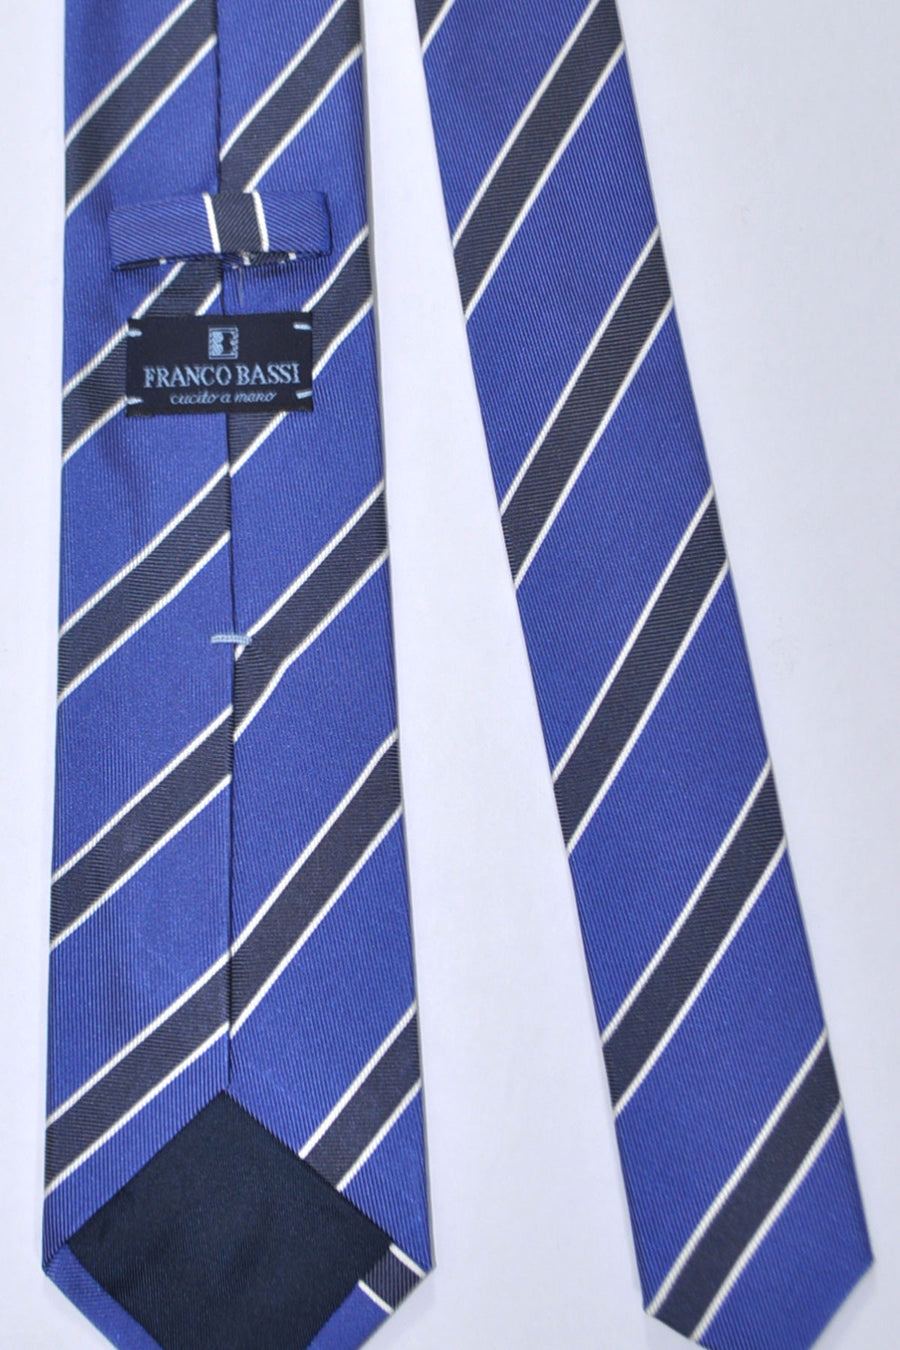 Franco Bassi Silk Tie Royal Blue Black Silver Stripes - Made in Italy